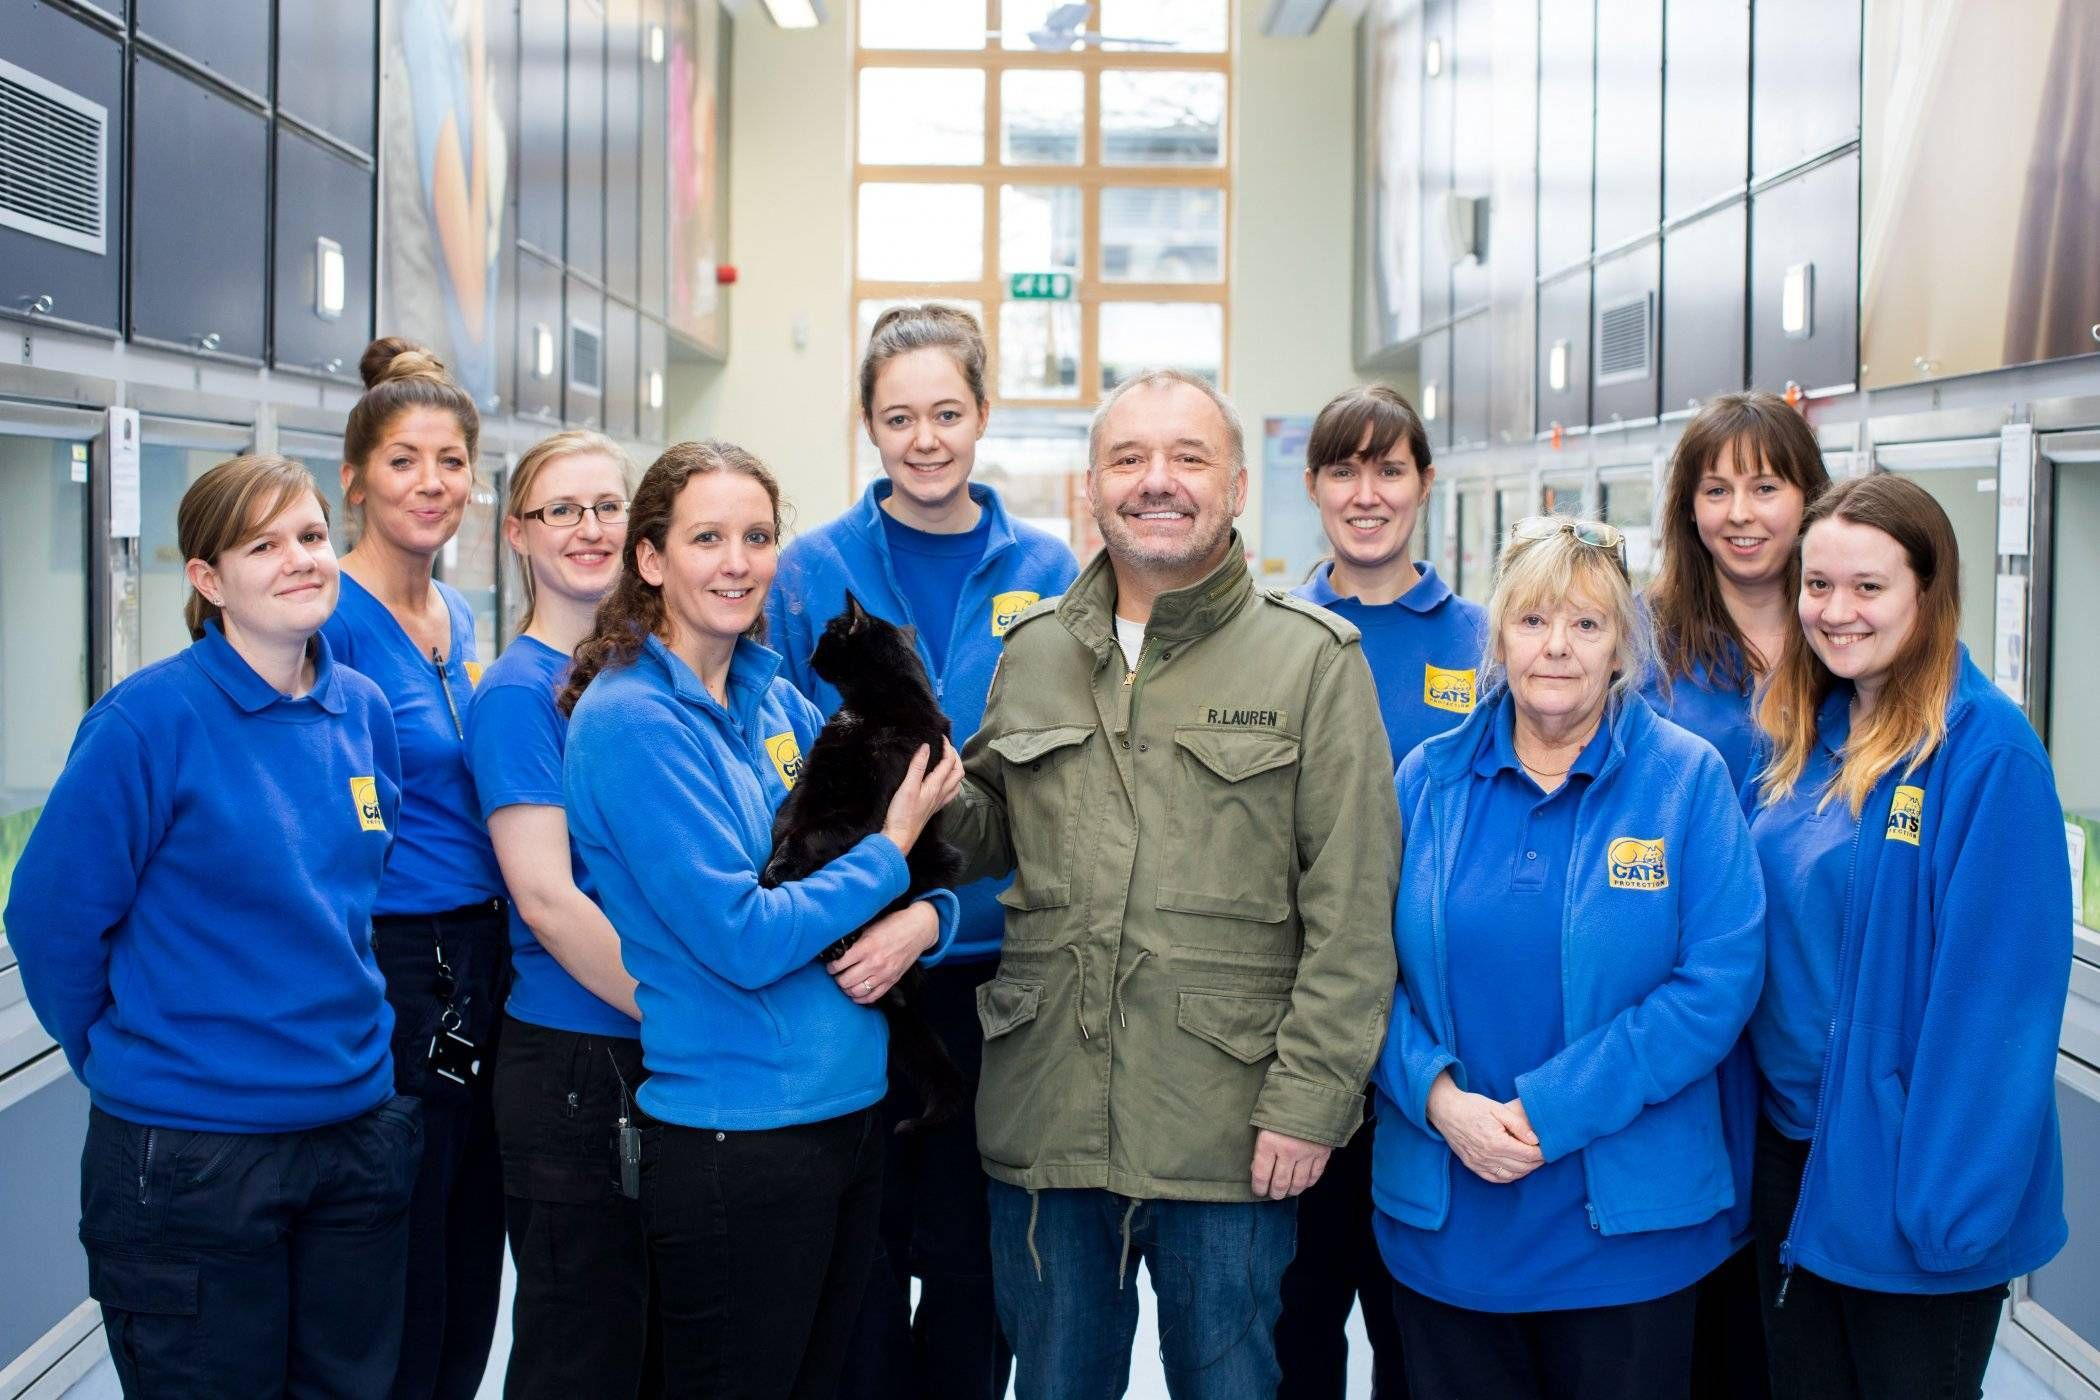 Tv Star Bob Mortimer Meets Unwanted Cats Looking For Homes At Cats Protection Find This Fantastic Photo From Katzenworld Buy A Kitten Tv Stars Cats